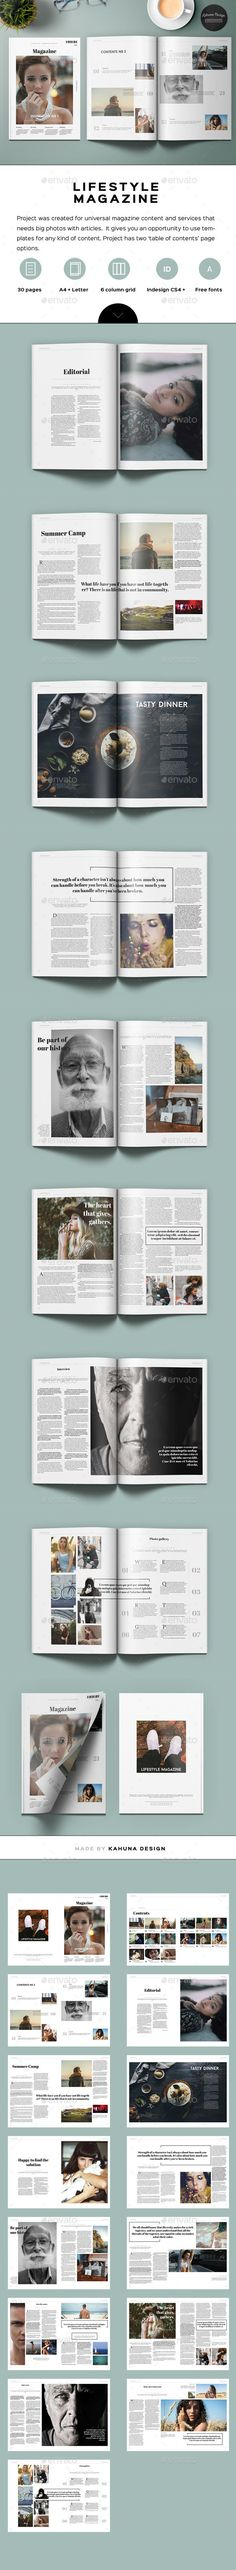 e magazine templates free download - multipurpose fashion brochure template brochuretemplates